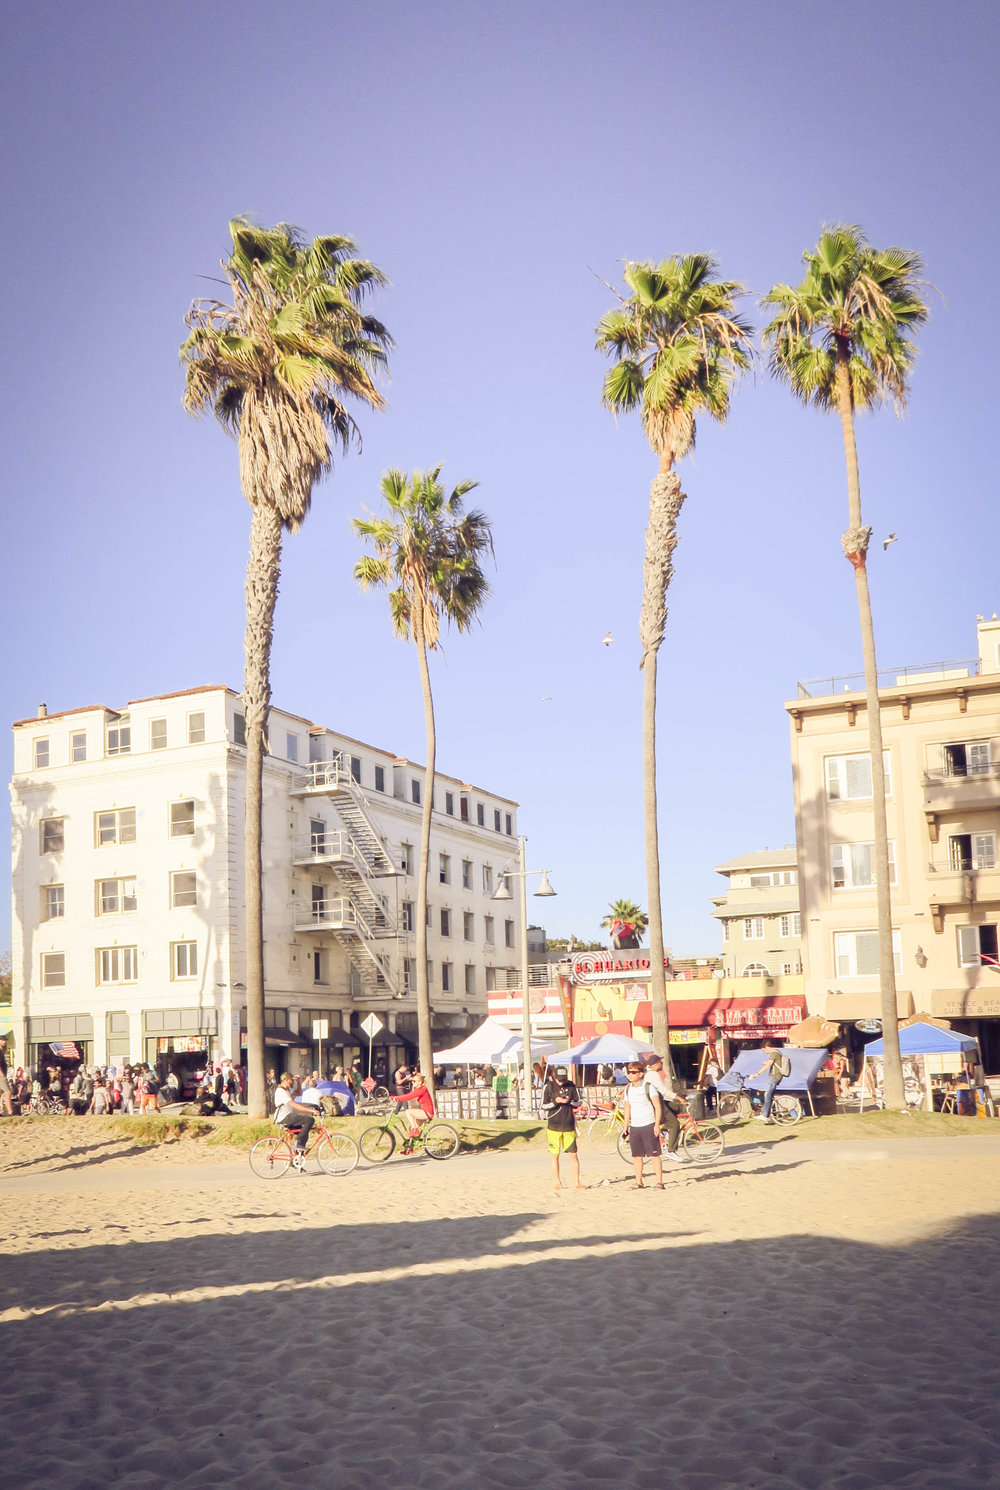 Only chill vibes in Venice Beach